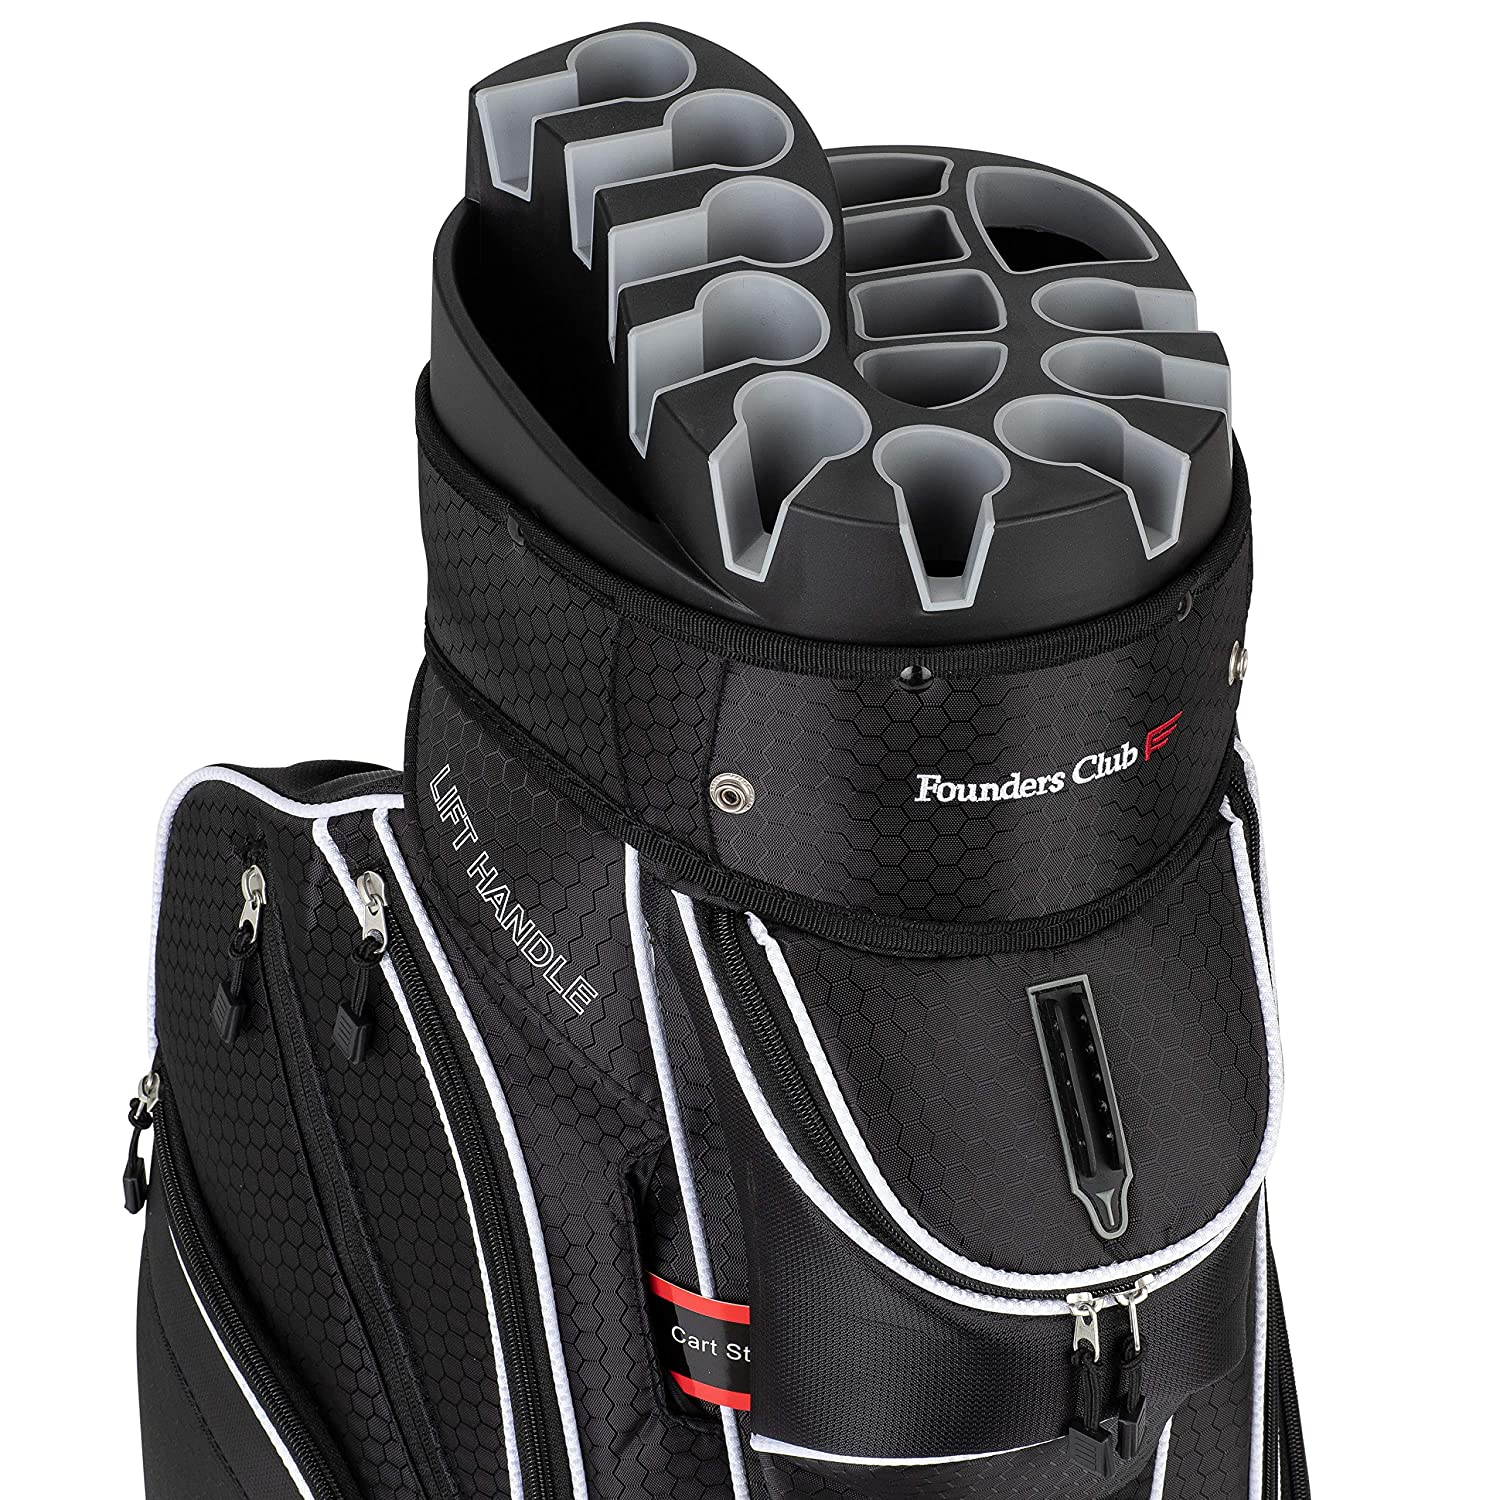 8 Top Rated Best Golf Bags For Push Carts [Review & Buying Guide] 7